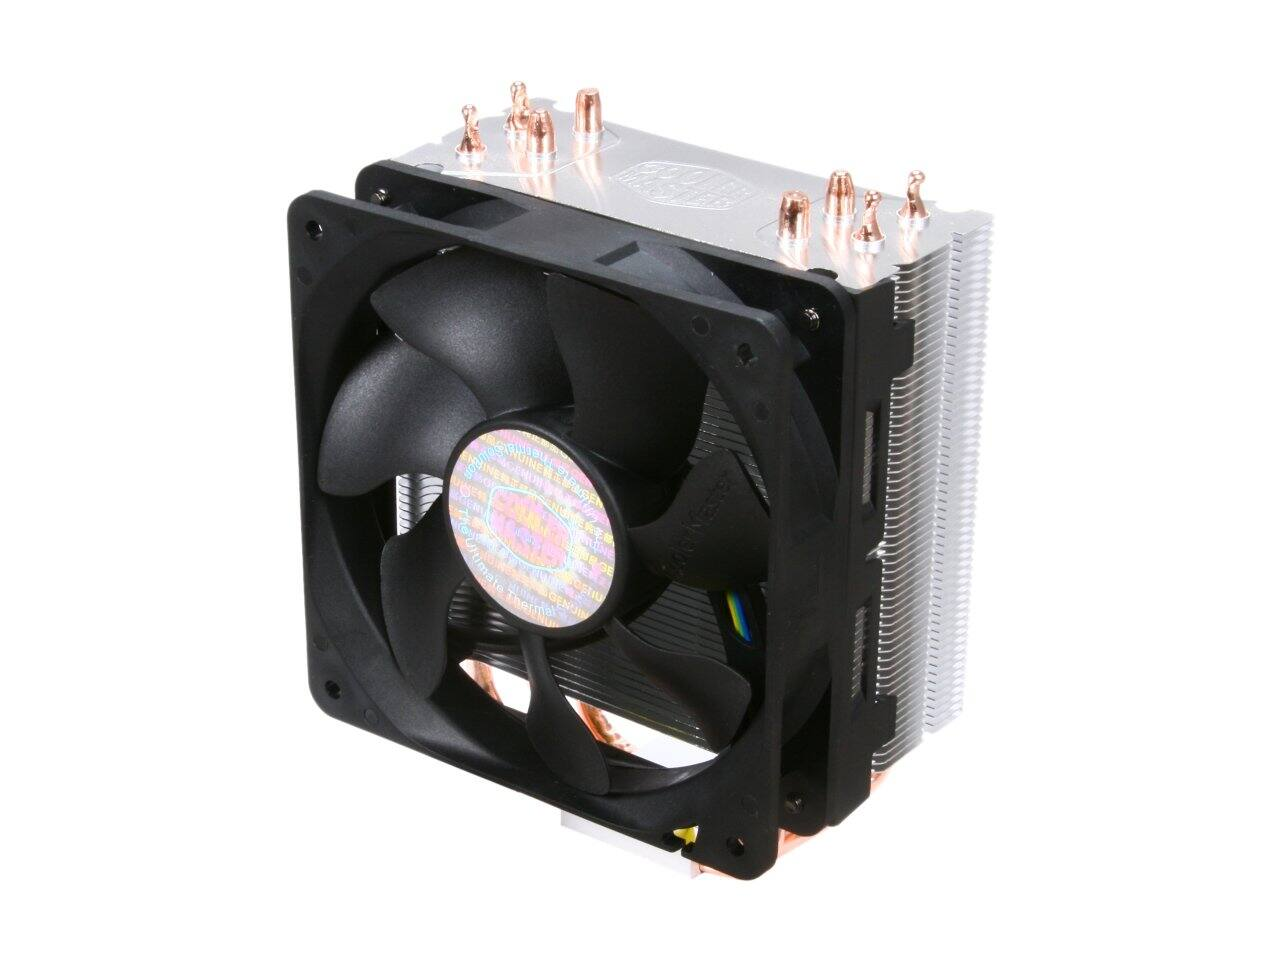 Cooler Master Hyper 212 Plus 120mm CPU Cooler for $19.99 AR & More + Free Shipping @ Newegg.com